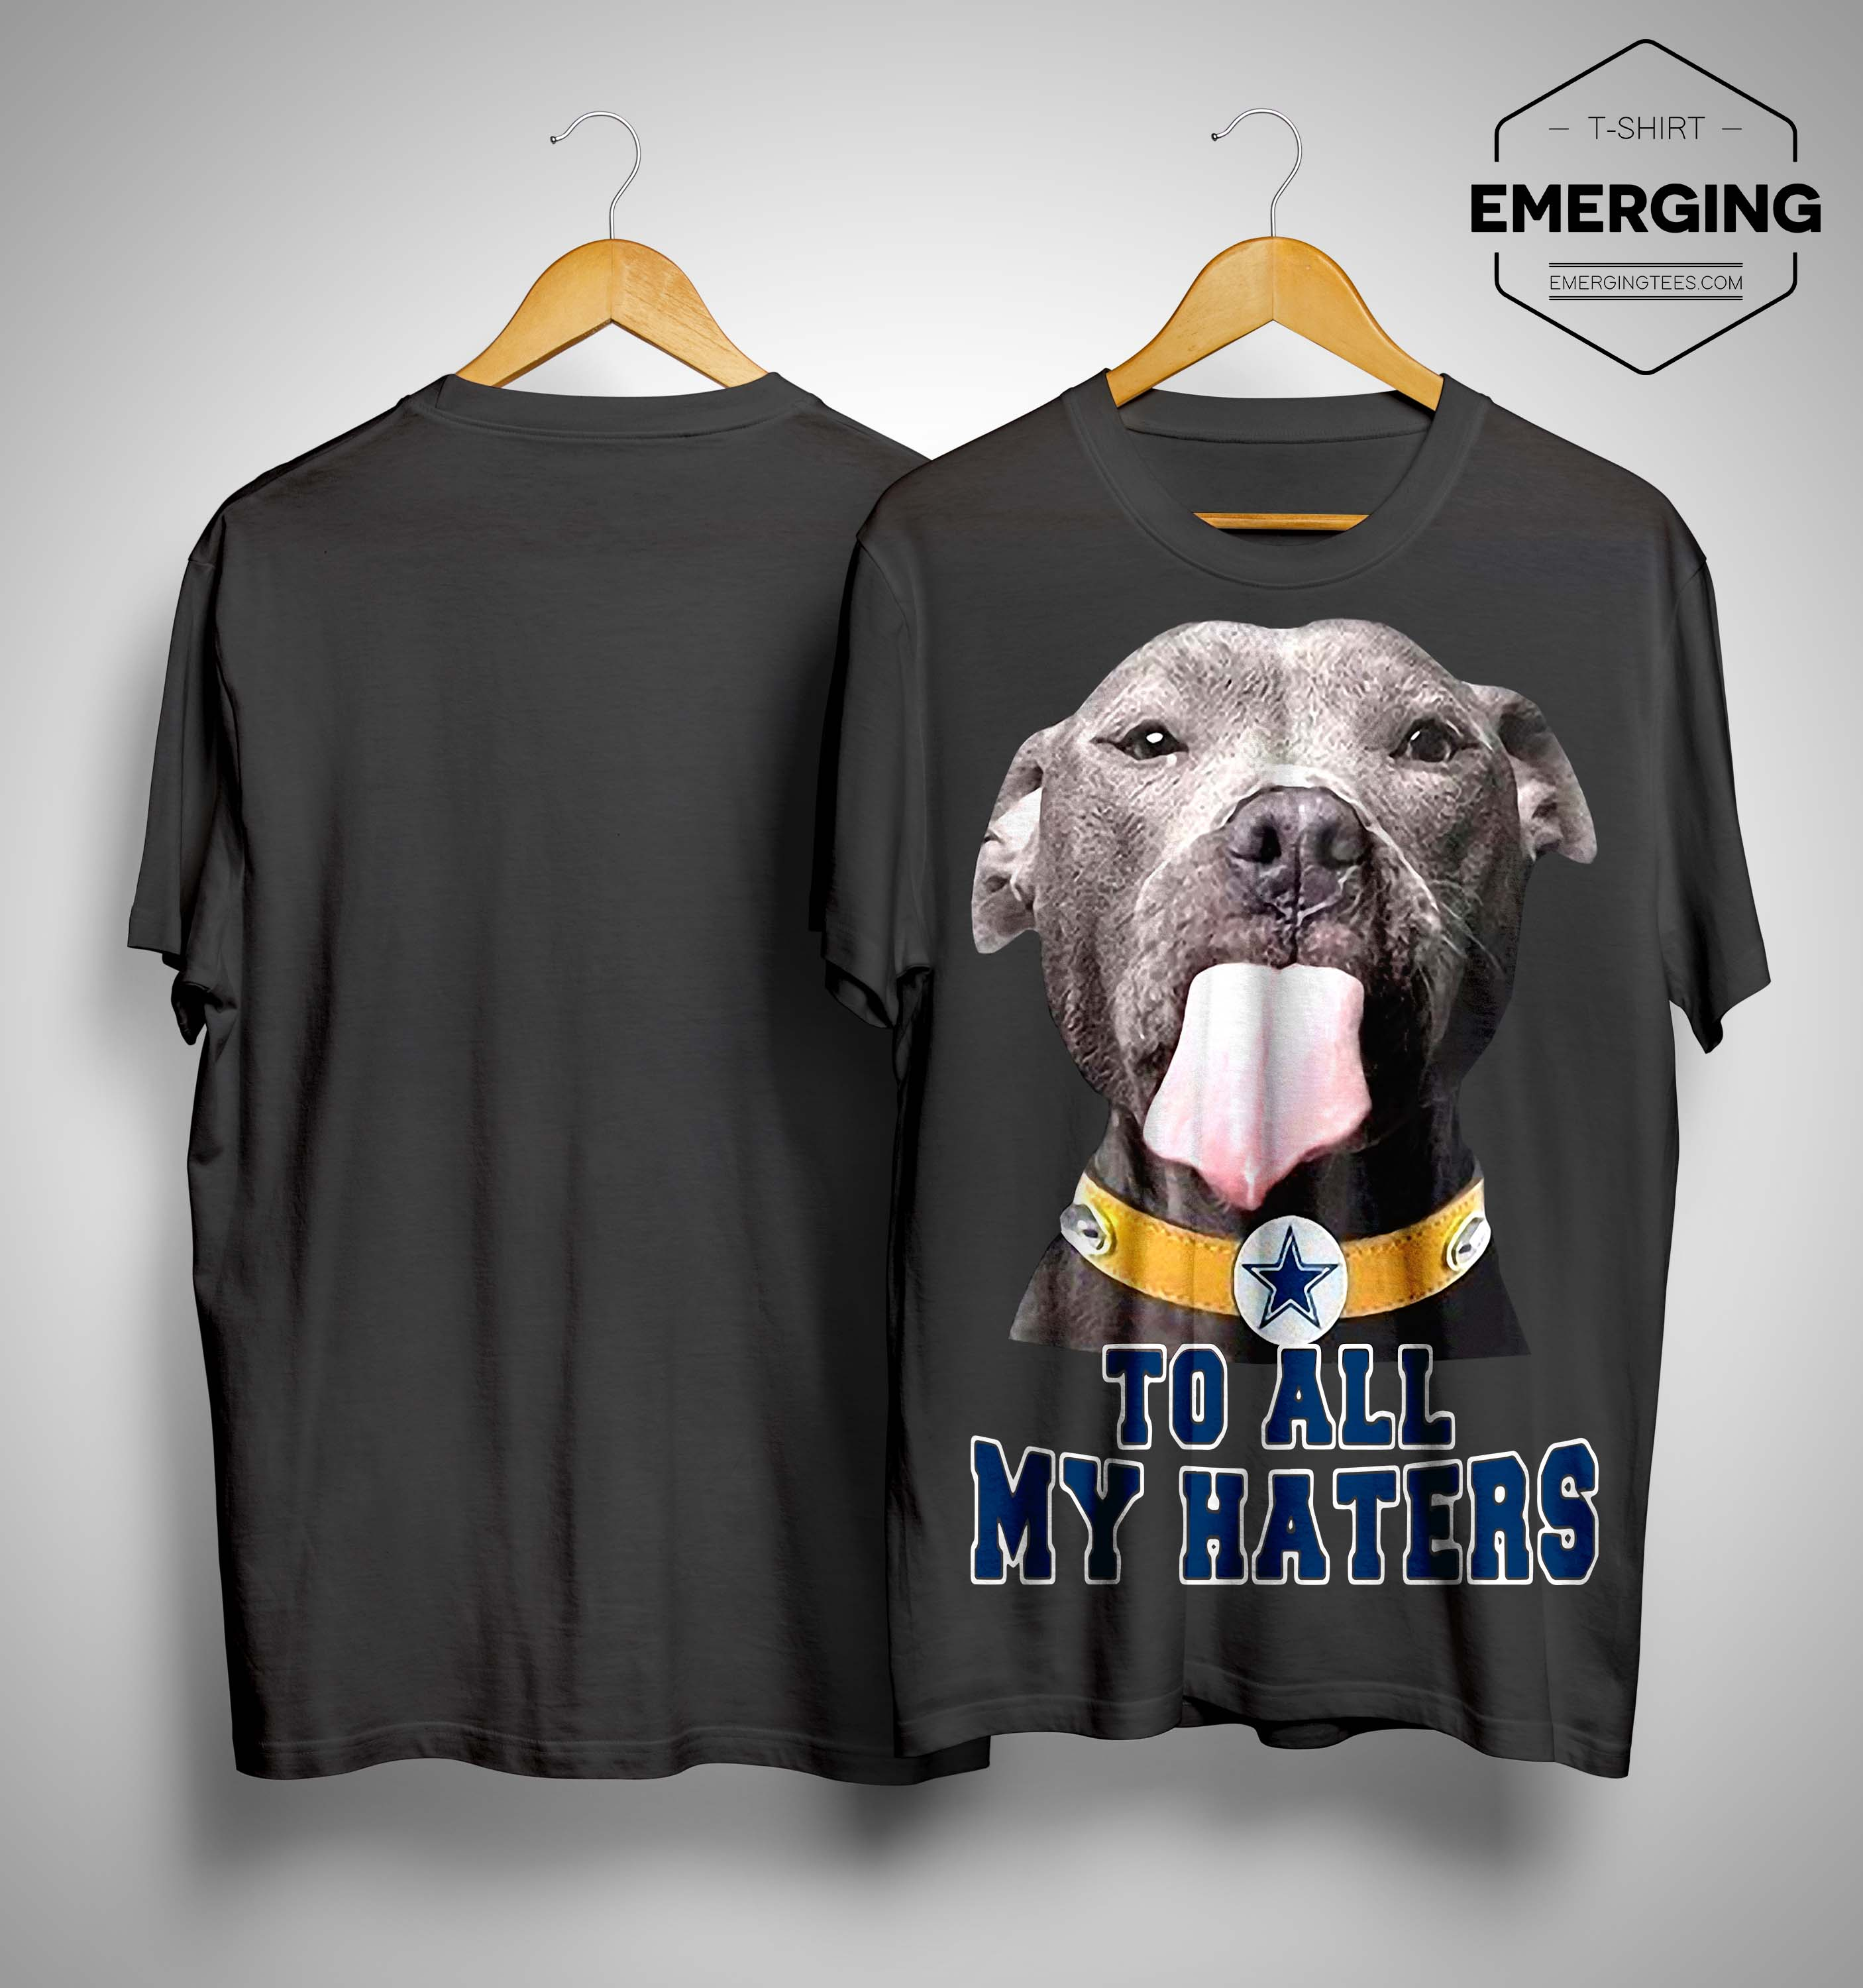 newest 6f5a7 77f84 Dallas Cowboys Pitbull To All My Haters Shirt, Sweater and ...